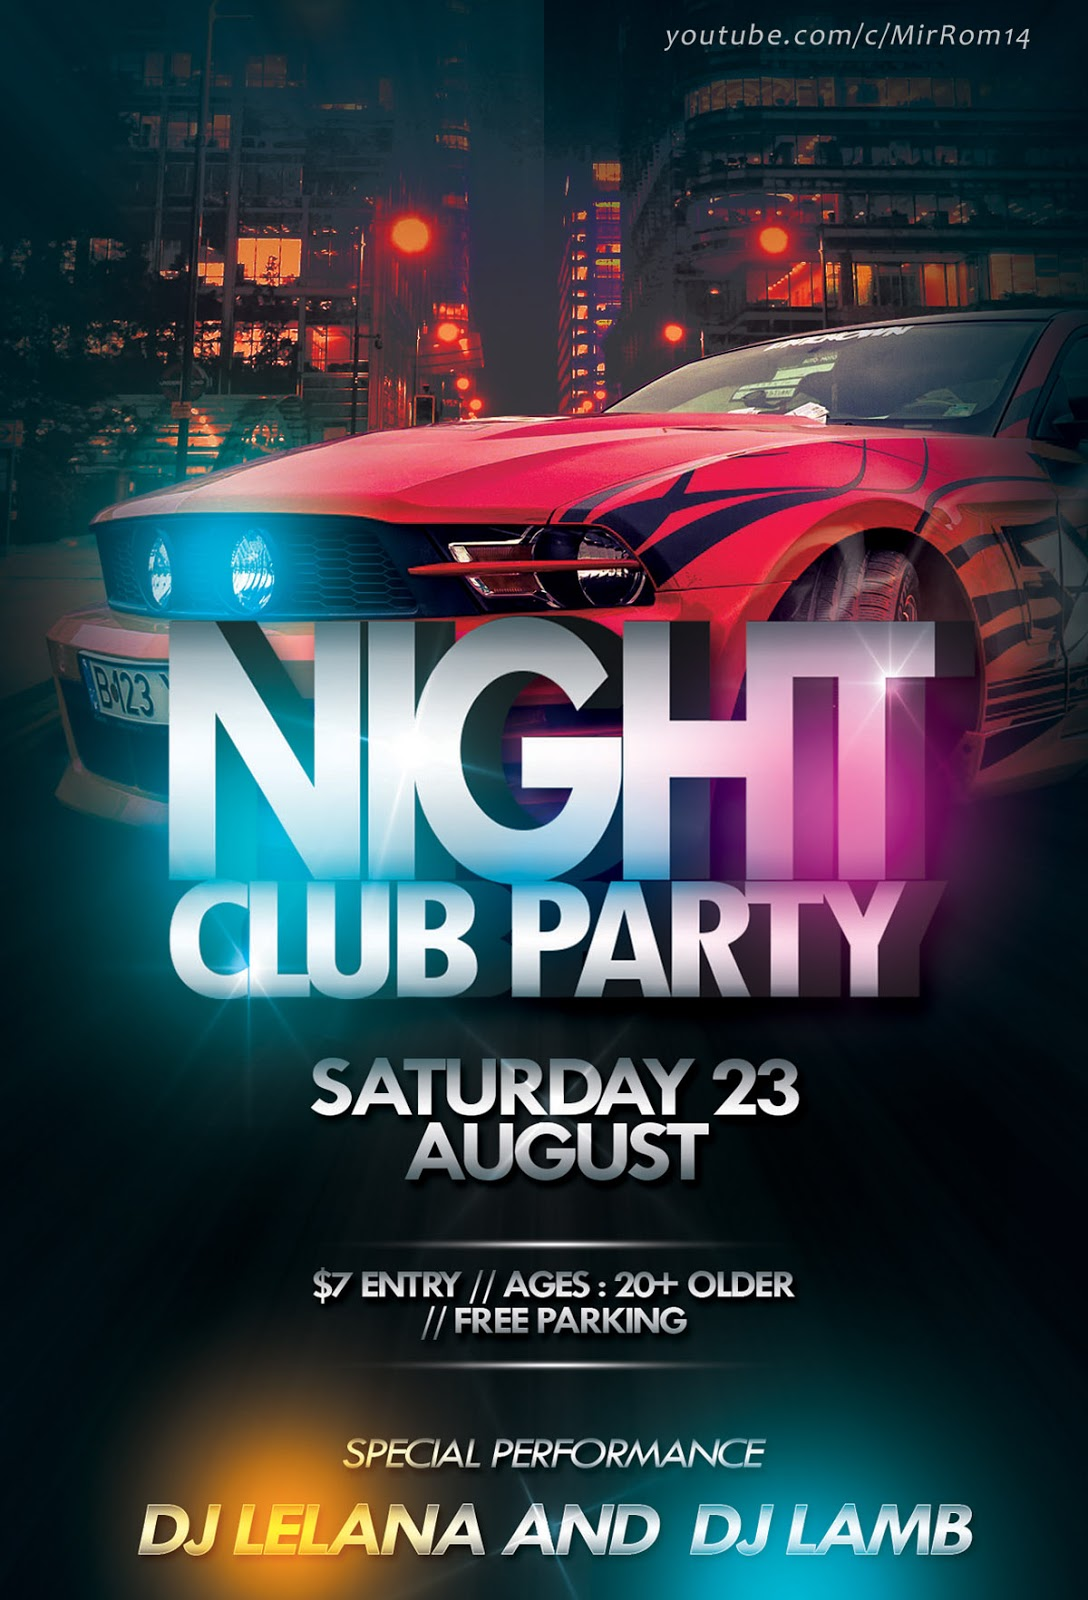 Create a Nightclub Party Flyer In Photoshop